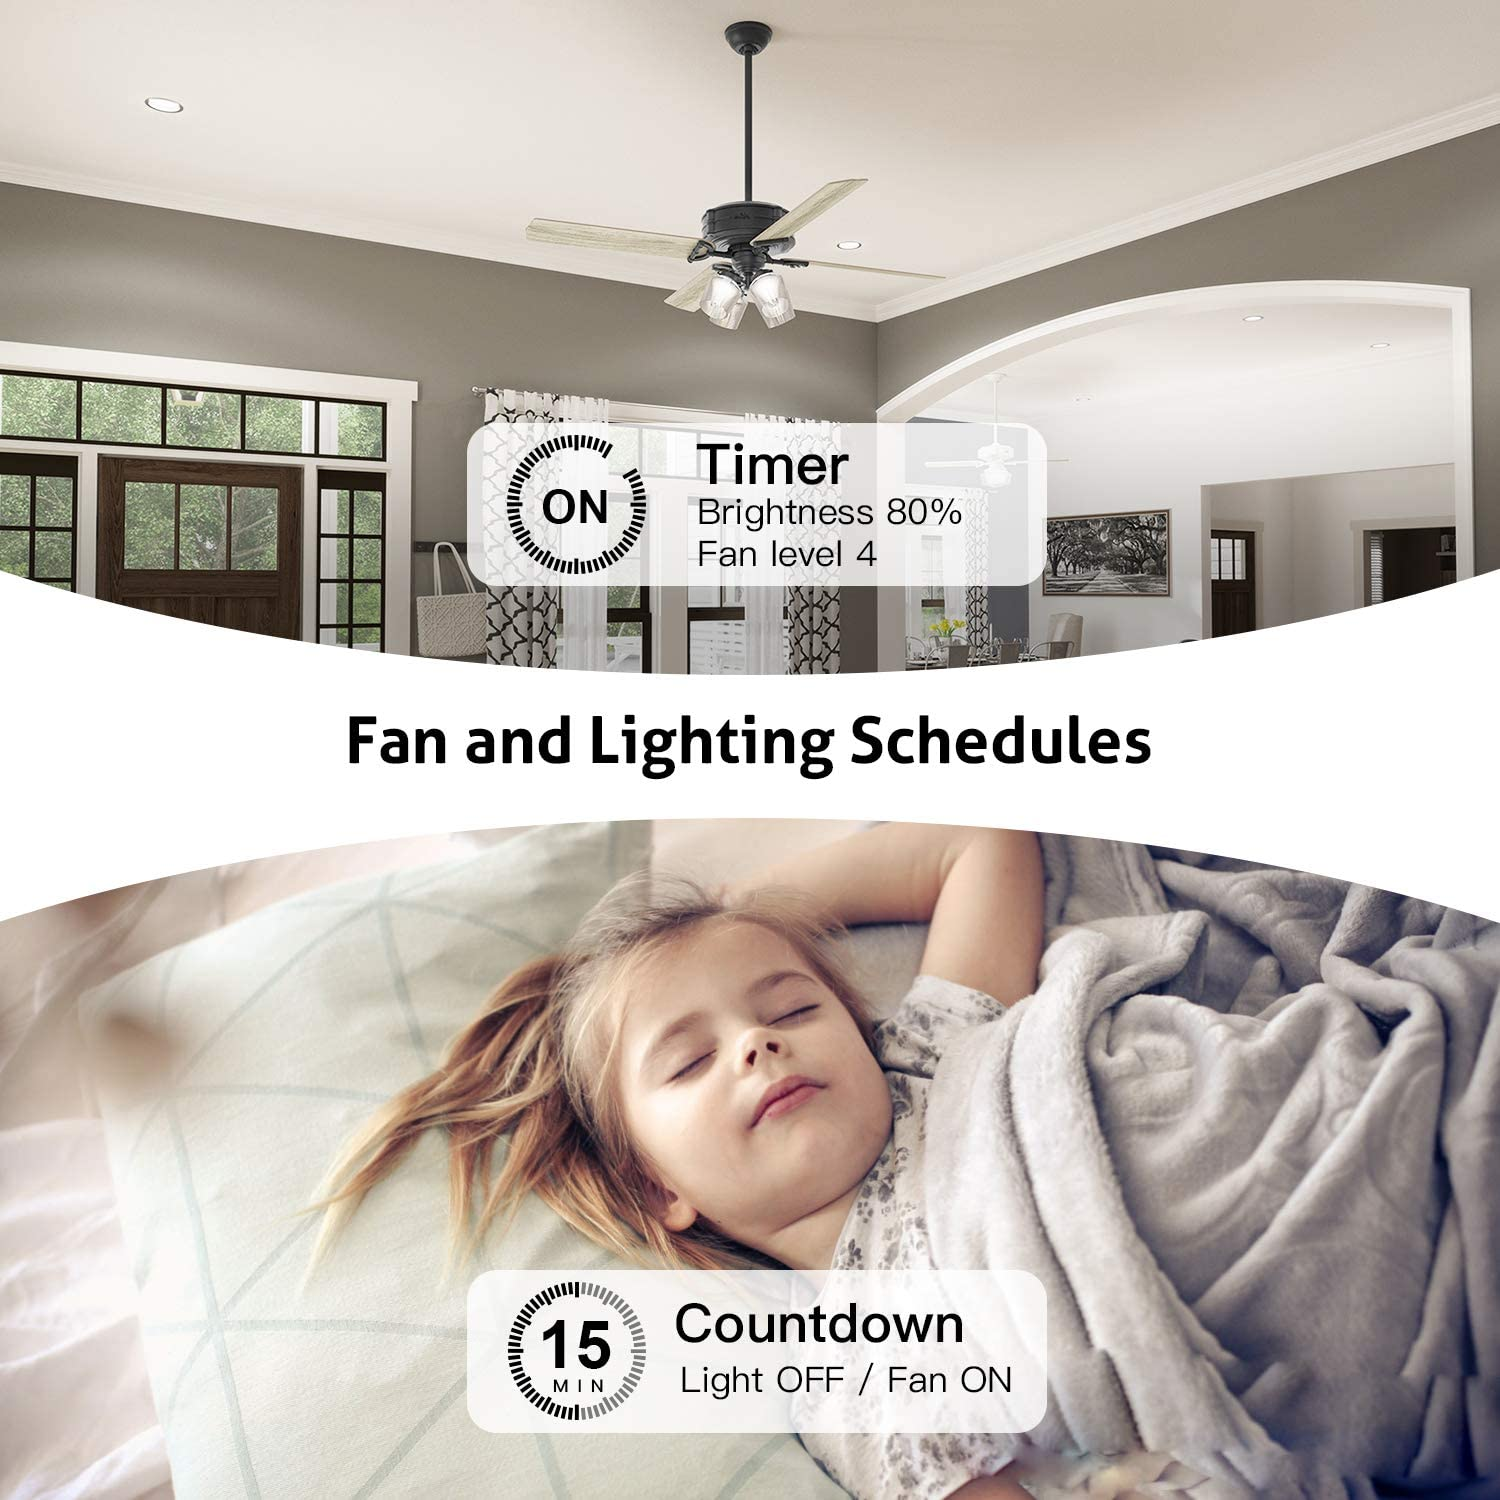 Smart Ceiling Fan Control and Dimmer Light Switch, Neutral Wire Needed, Treatlife Single Pole Wi-Fi Light Switch Fan Speed Control, Works with Alexa/Google Assistant, Schedule, Remote Control (1PACK): Industrial & Scientific